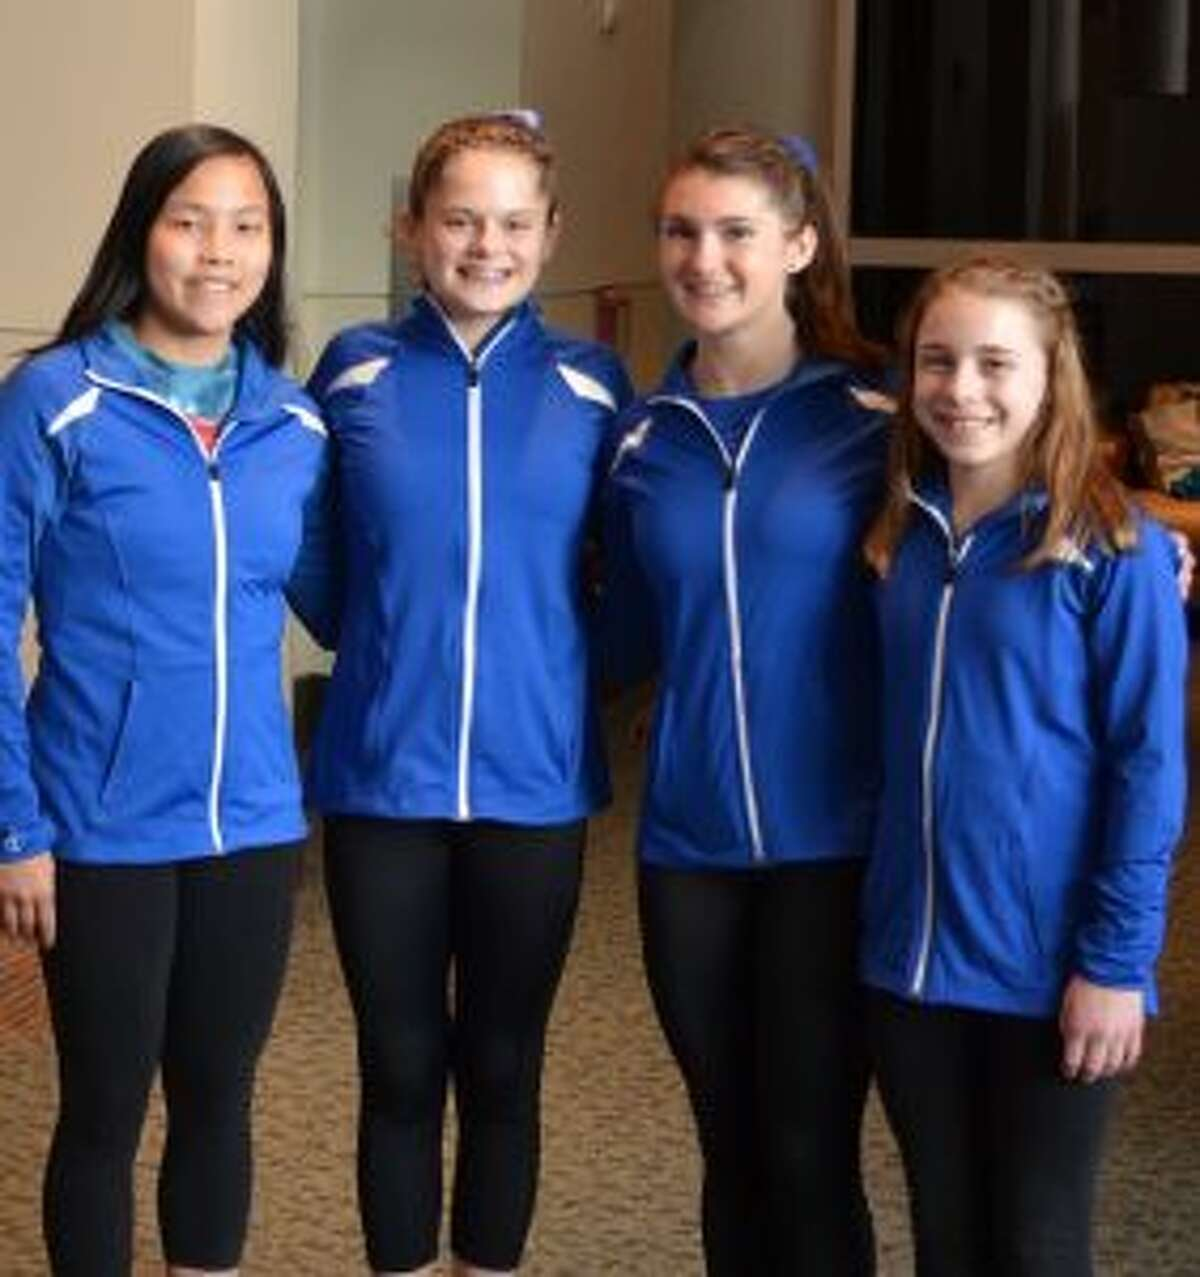 Next Dimension Gymnasts of Trumbull had four state gymnasts qualify to represent Connecticut at the Regional Championships - Samantha Markland, Macarthy Keane, Merritt Stevenson and Caitlin Vozzella.